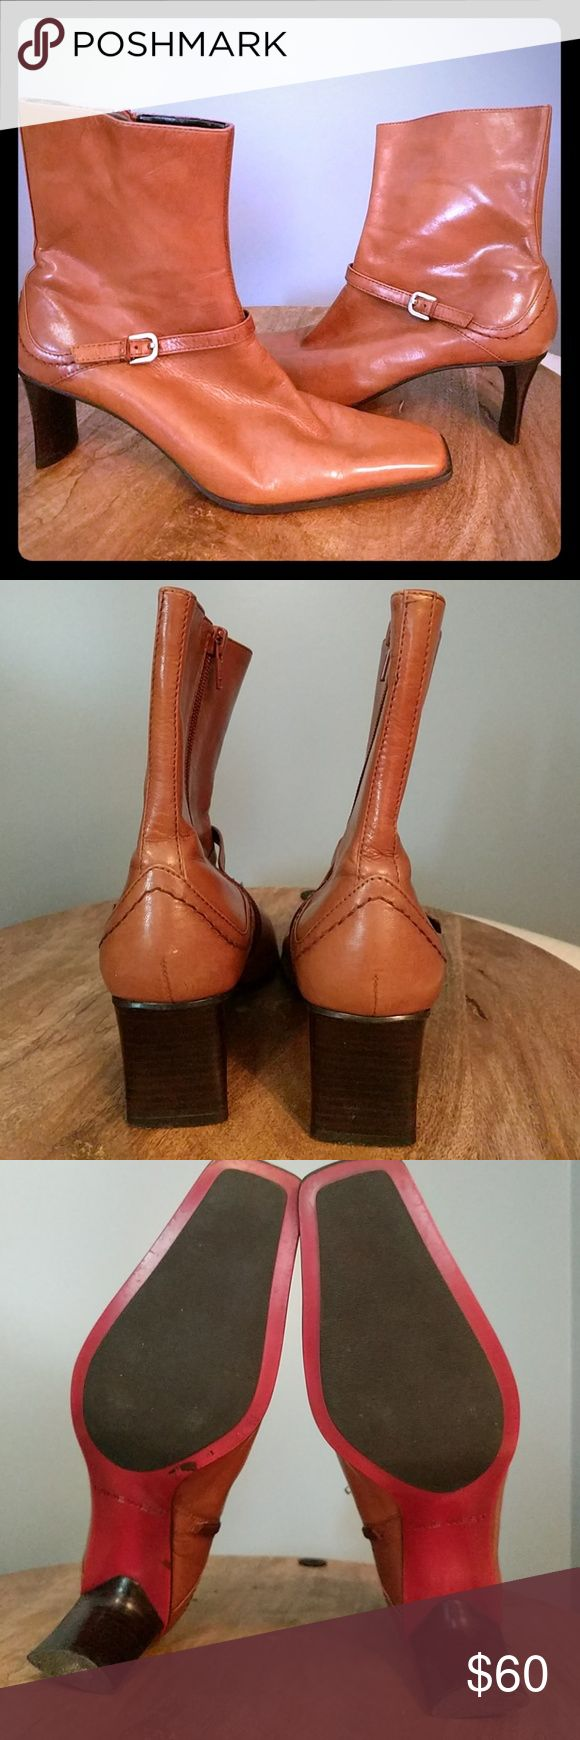 Nine West Tan Leather Ankle Boot Lagosta Gorgeous tan leather ankle boots with 2.5 heel Square toe and buckle detail Soles have minimal to no wear 5th picture shows imperfection Nine West Shoes Ankle Boots & Booties